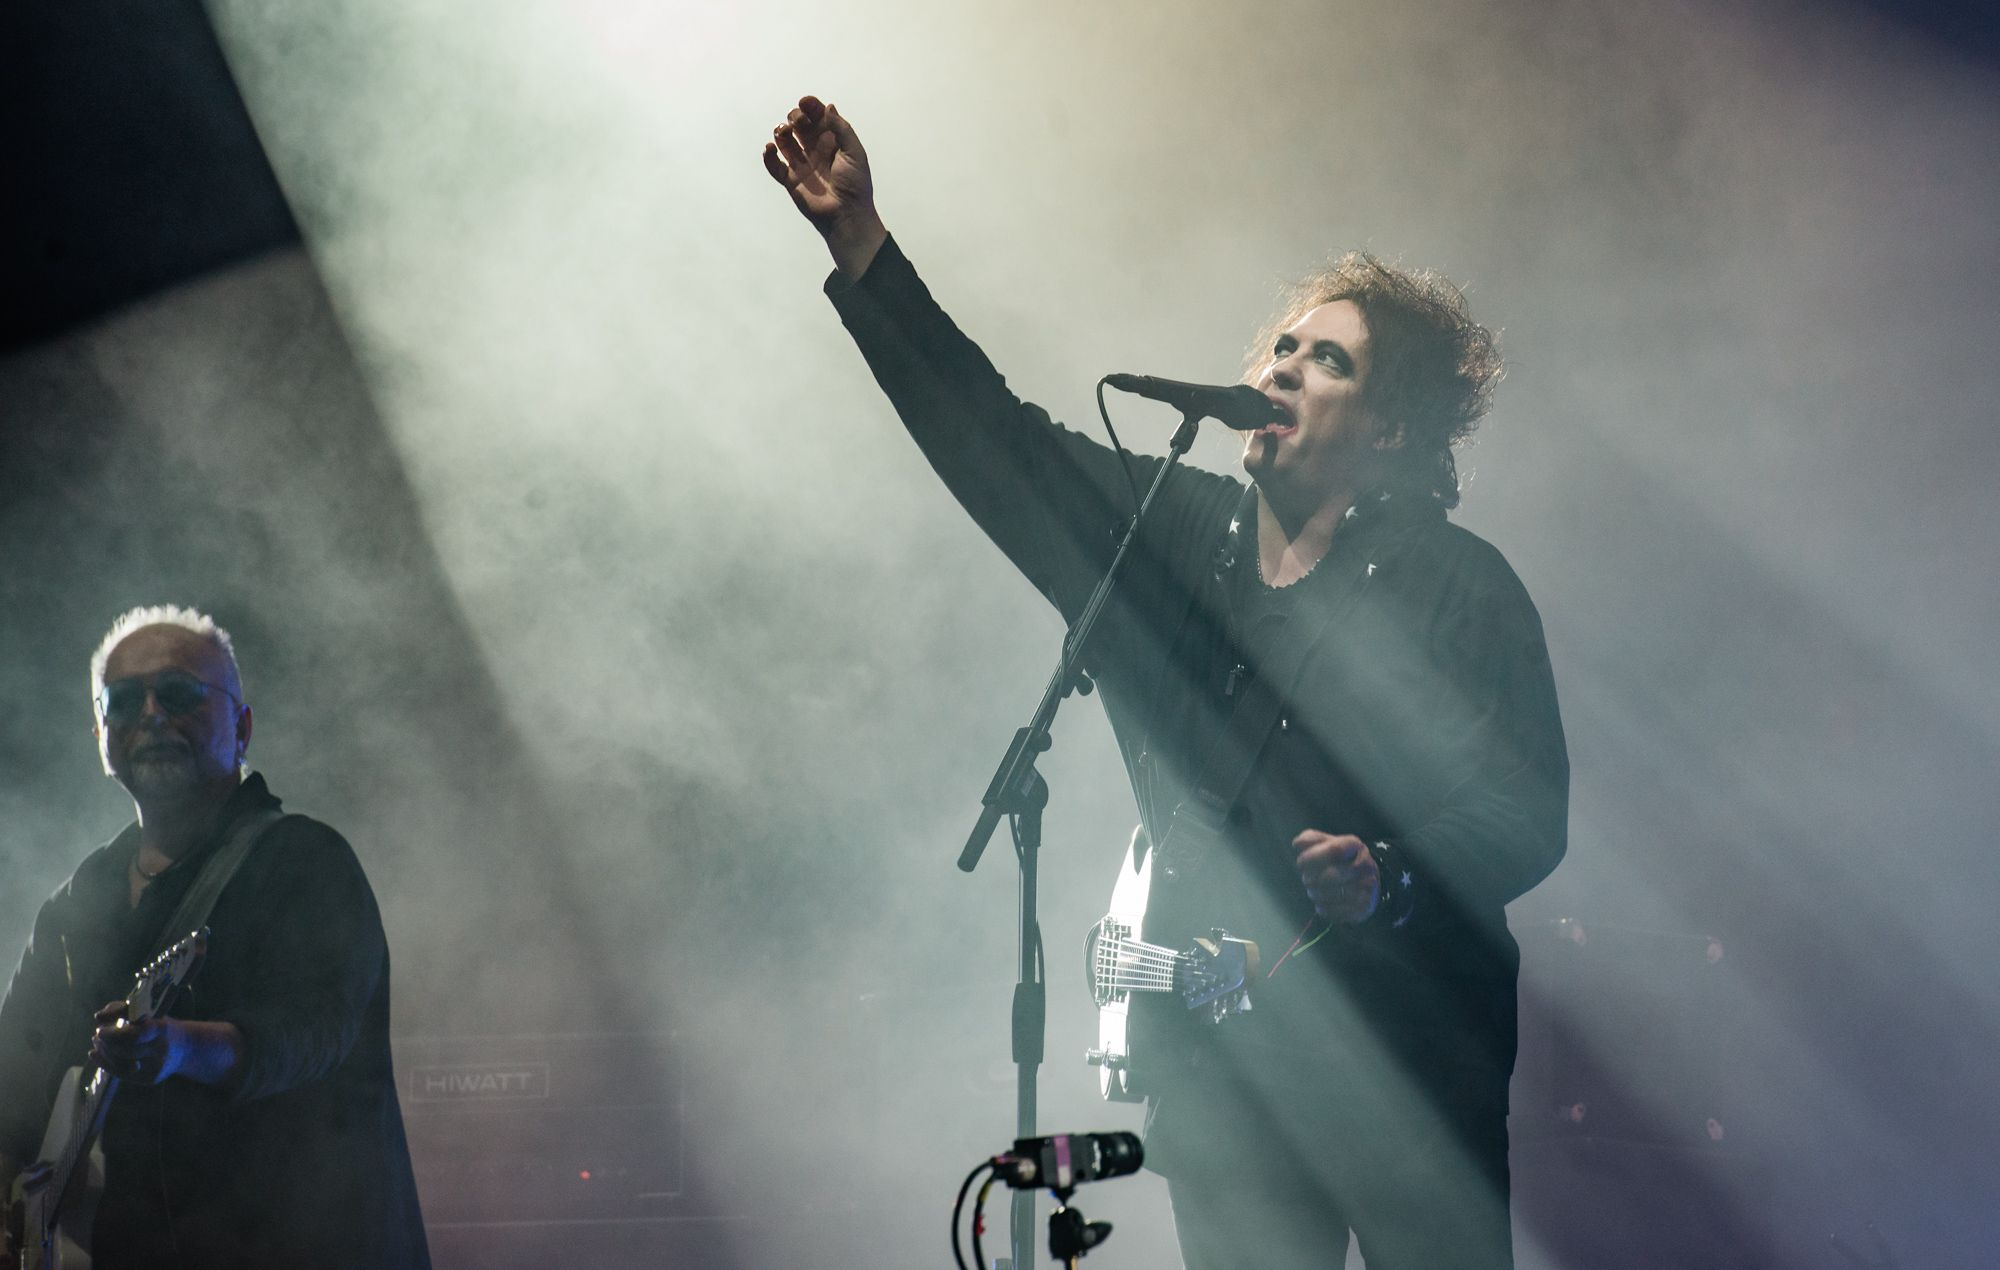 Guitar sales soar following The Cure's Glastonbury headline set #electricguitars